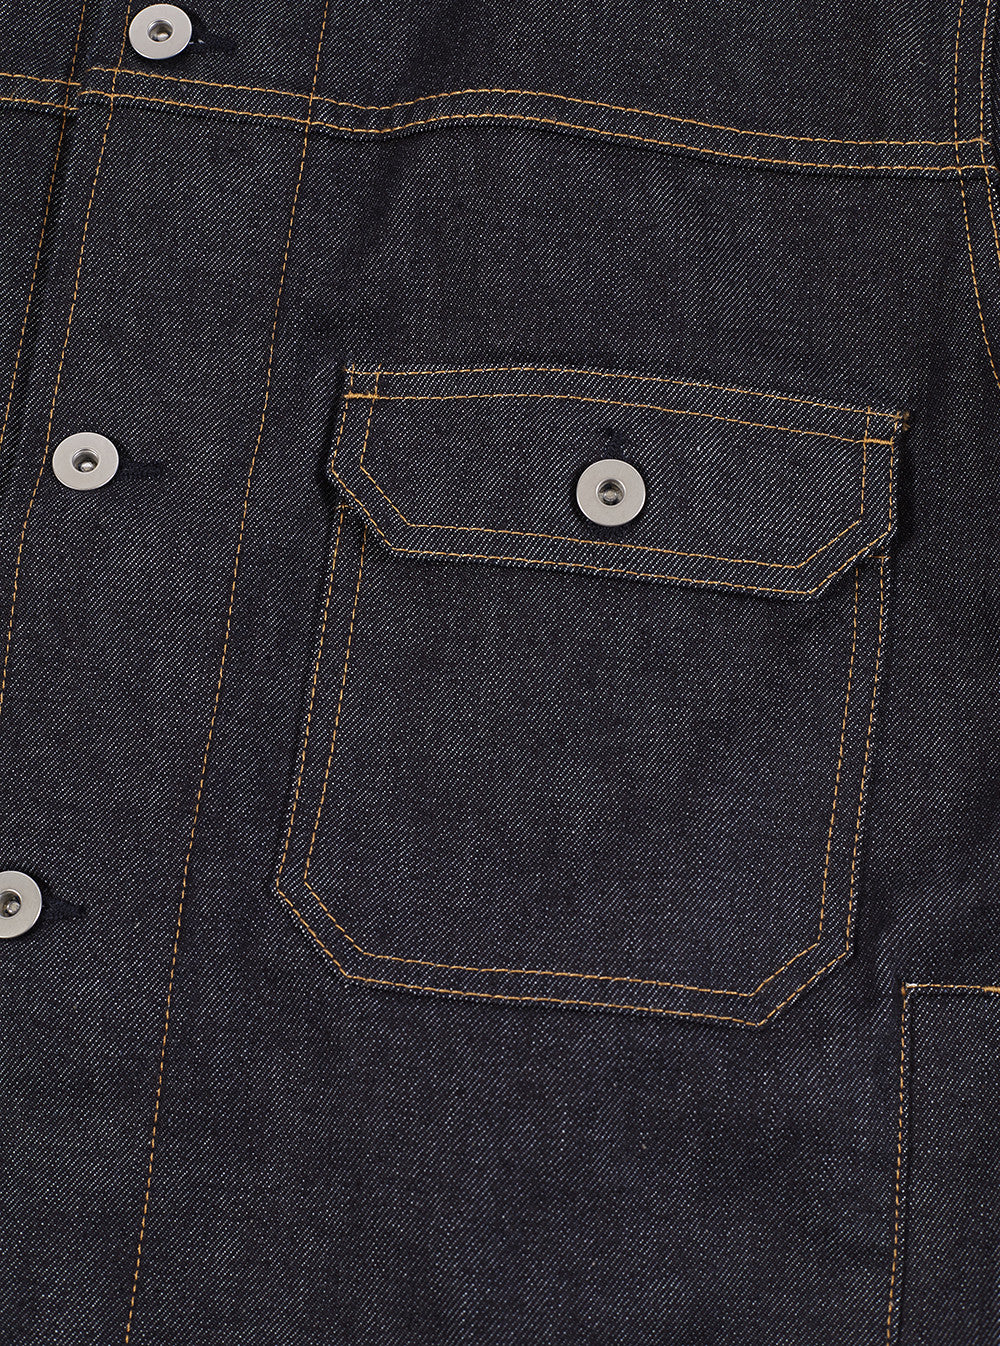 Workshop Denim Indigo Trucker Jacket In Selvedge Denim